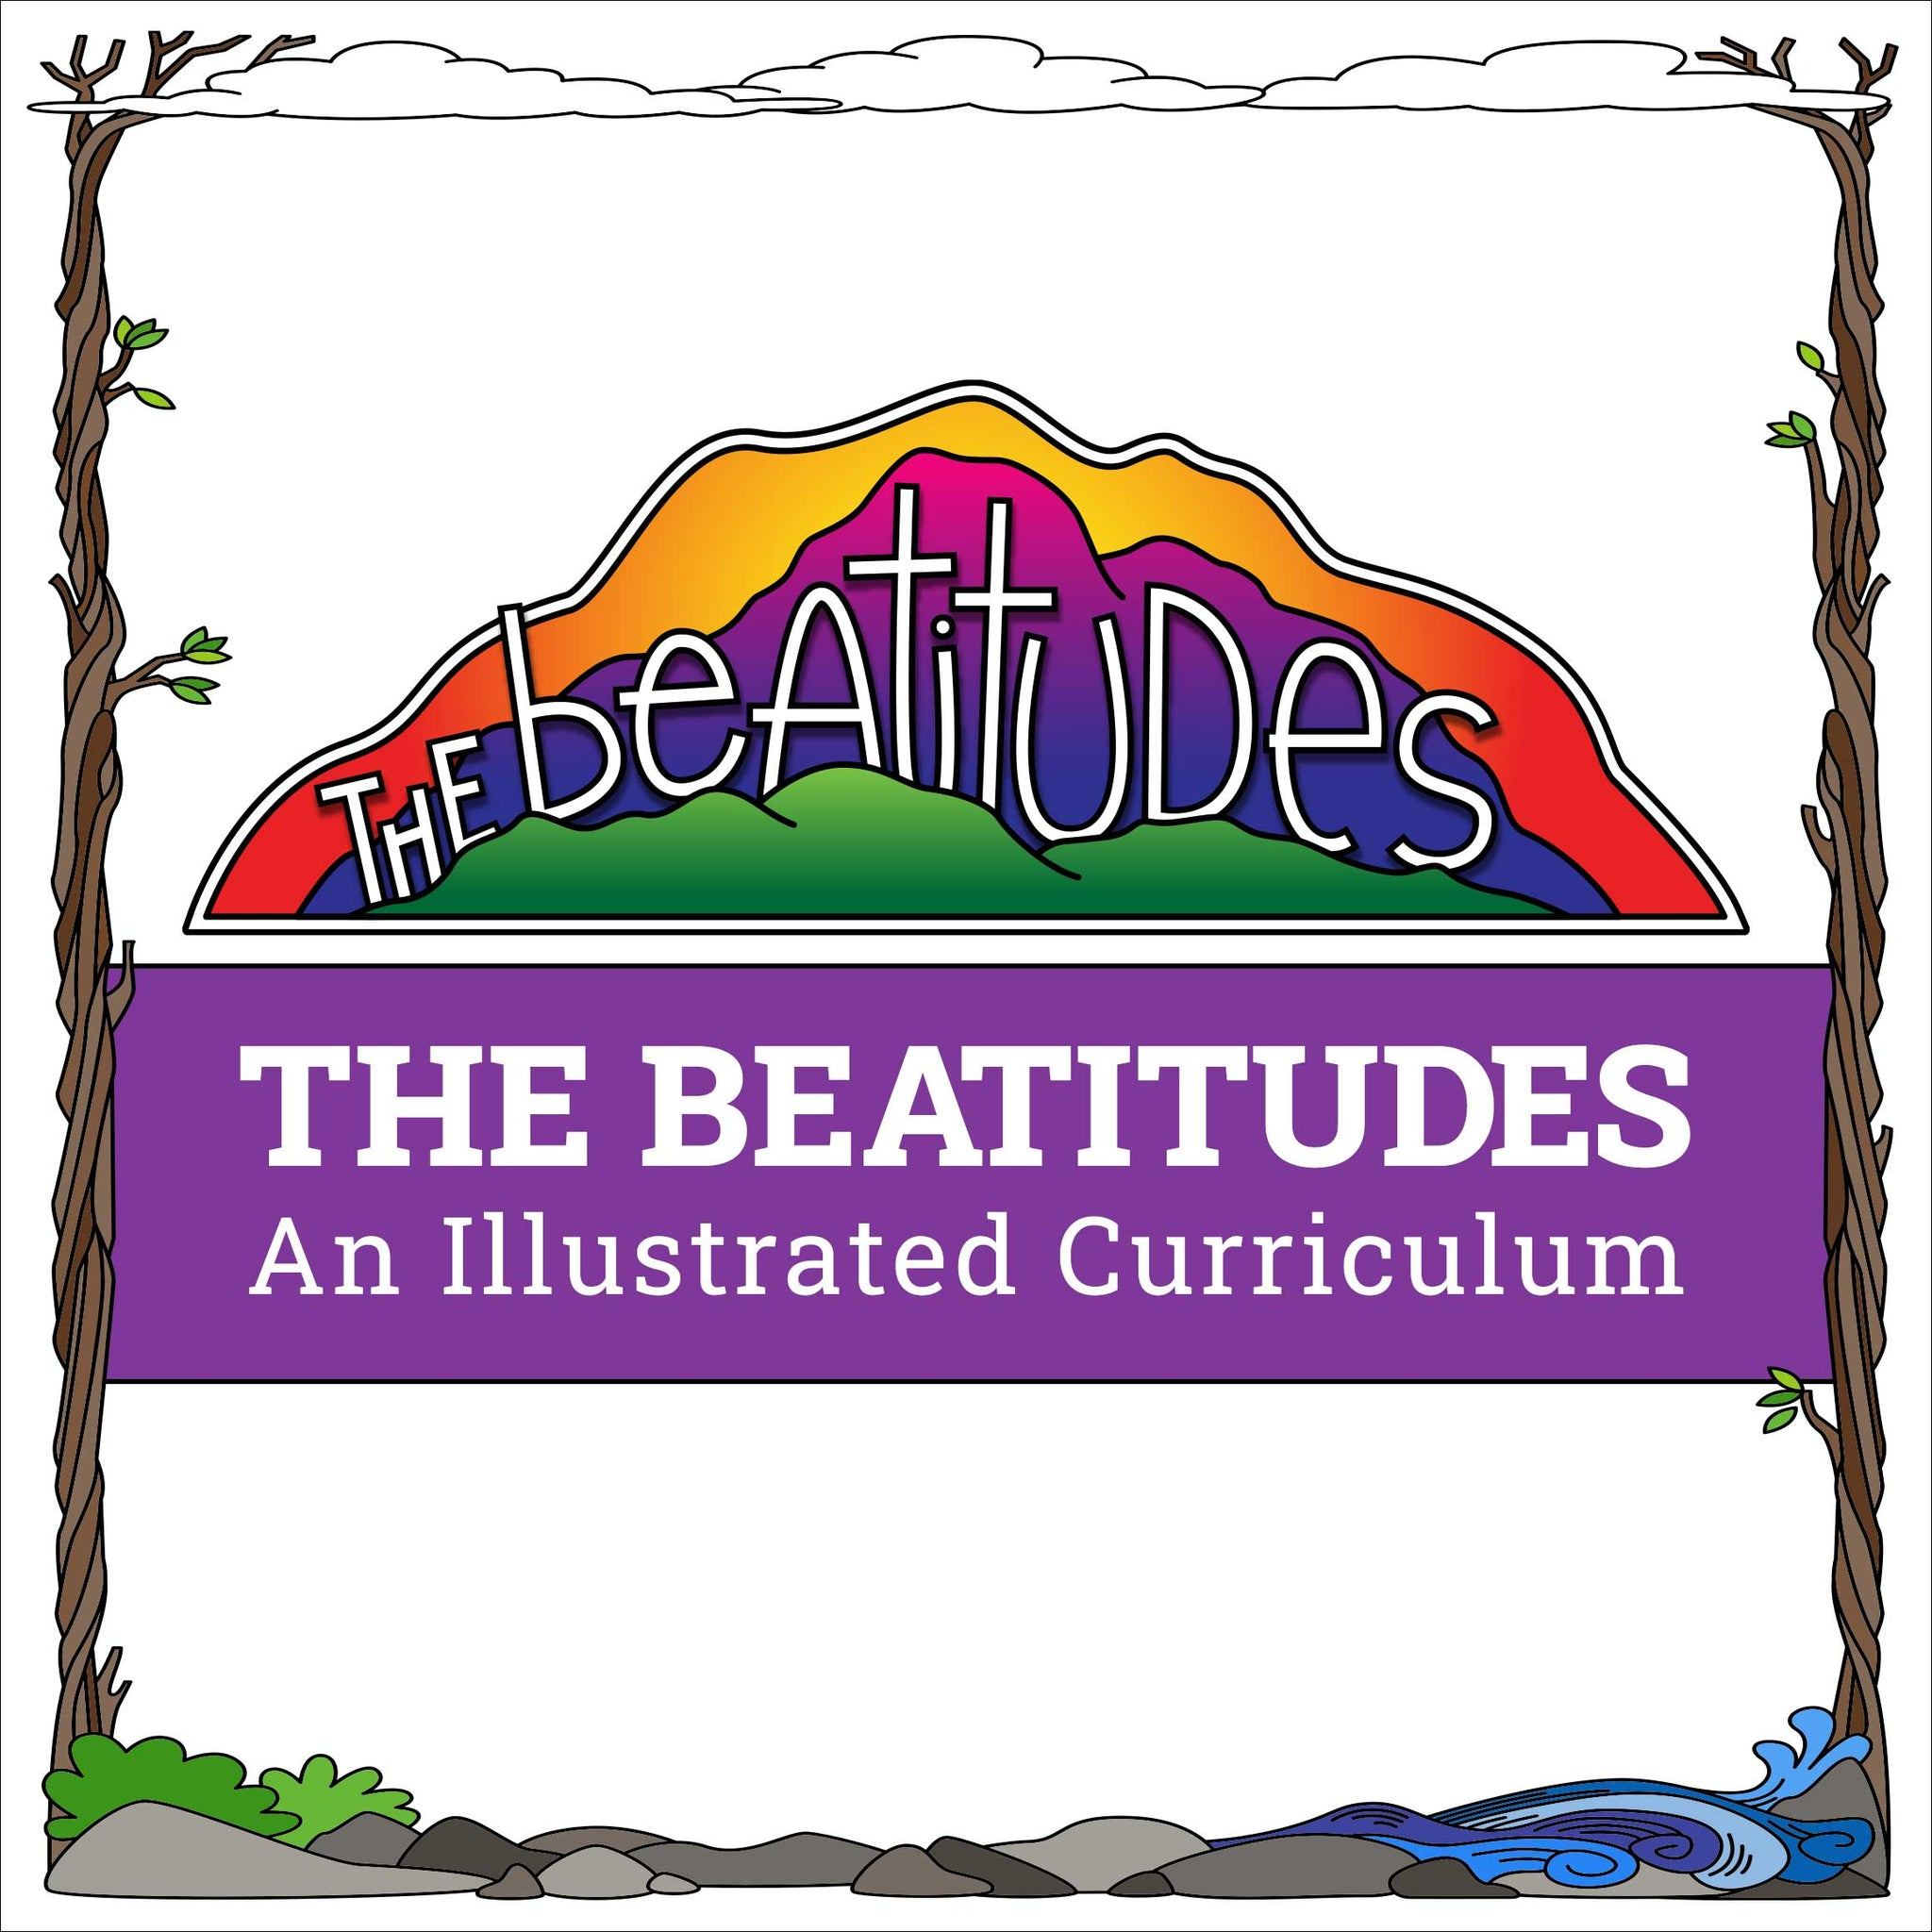 The Beatitudes: An Illustrated Curriculum